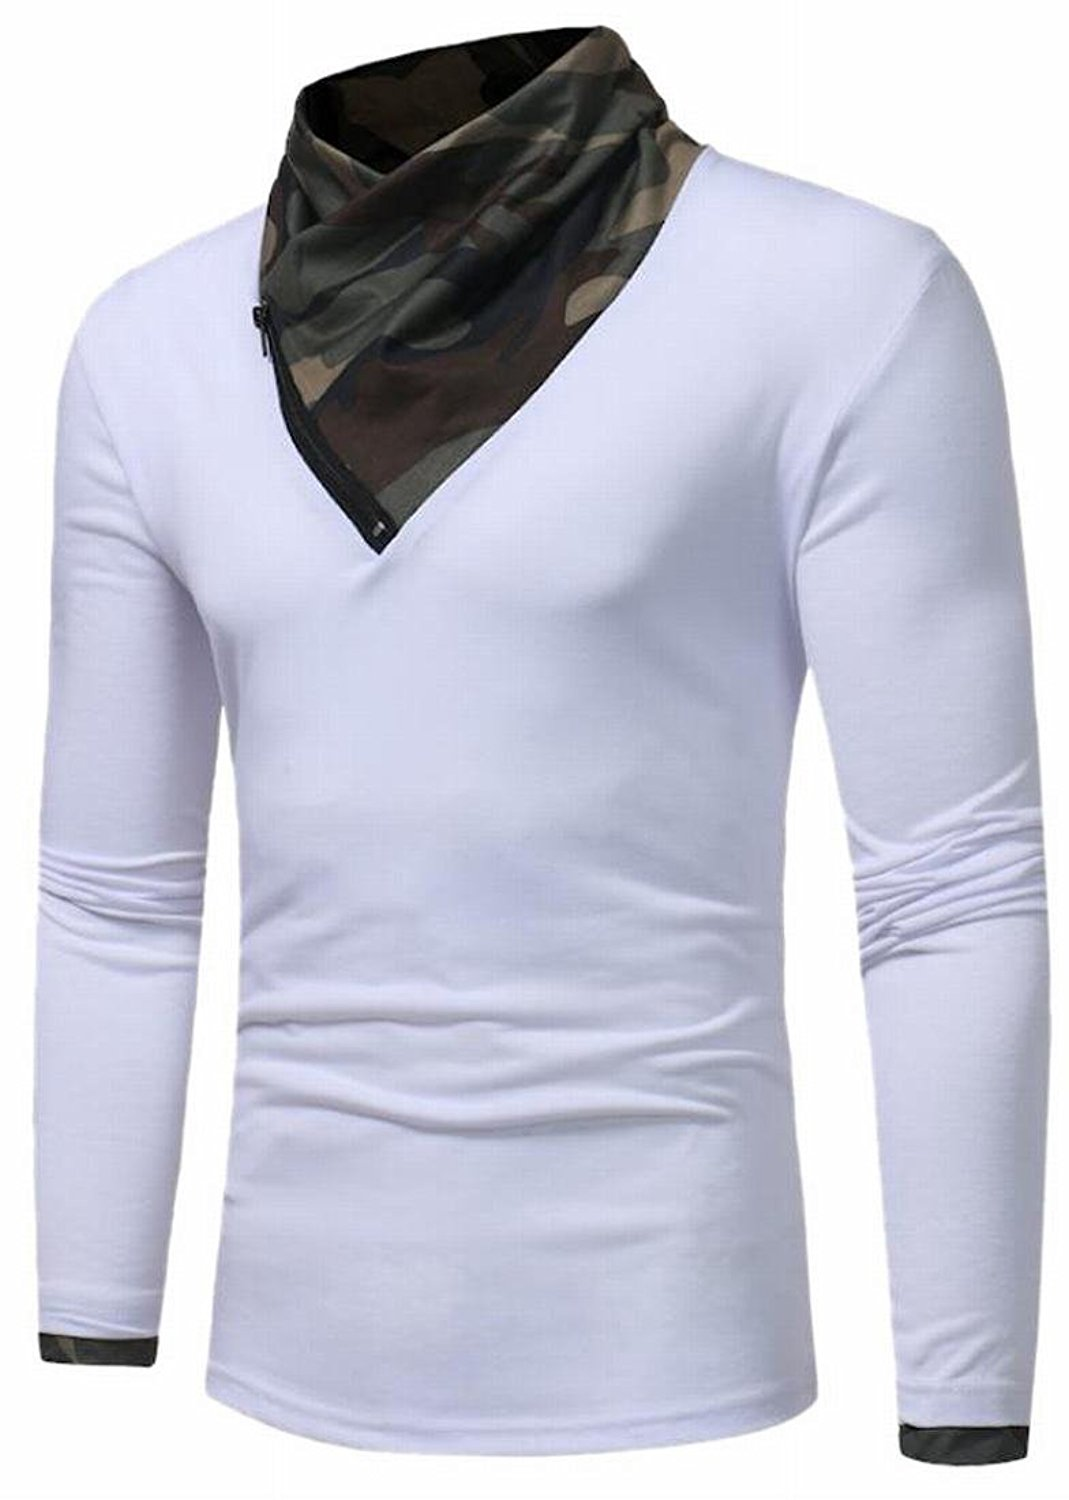 BU2H Men Plus Size Long Sleeve Round Neck Button Solid T-Shirts Top